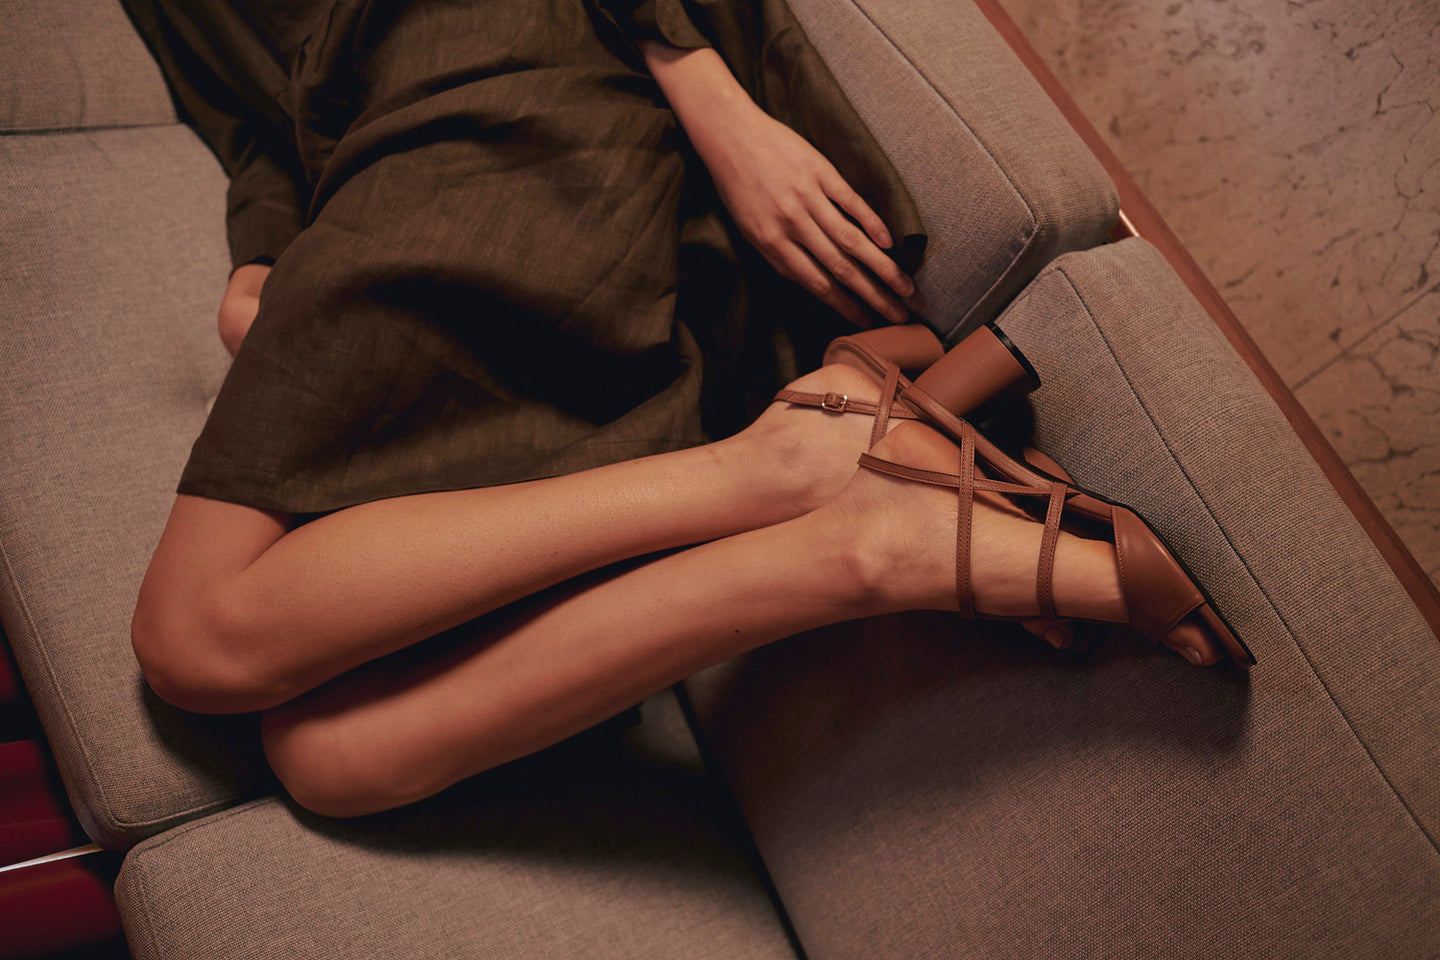 New arrival Alice strappy high heel sandals handmade in tan brown leather - ASHLEY LIM shoes, Intimacy collection